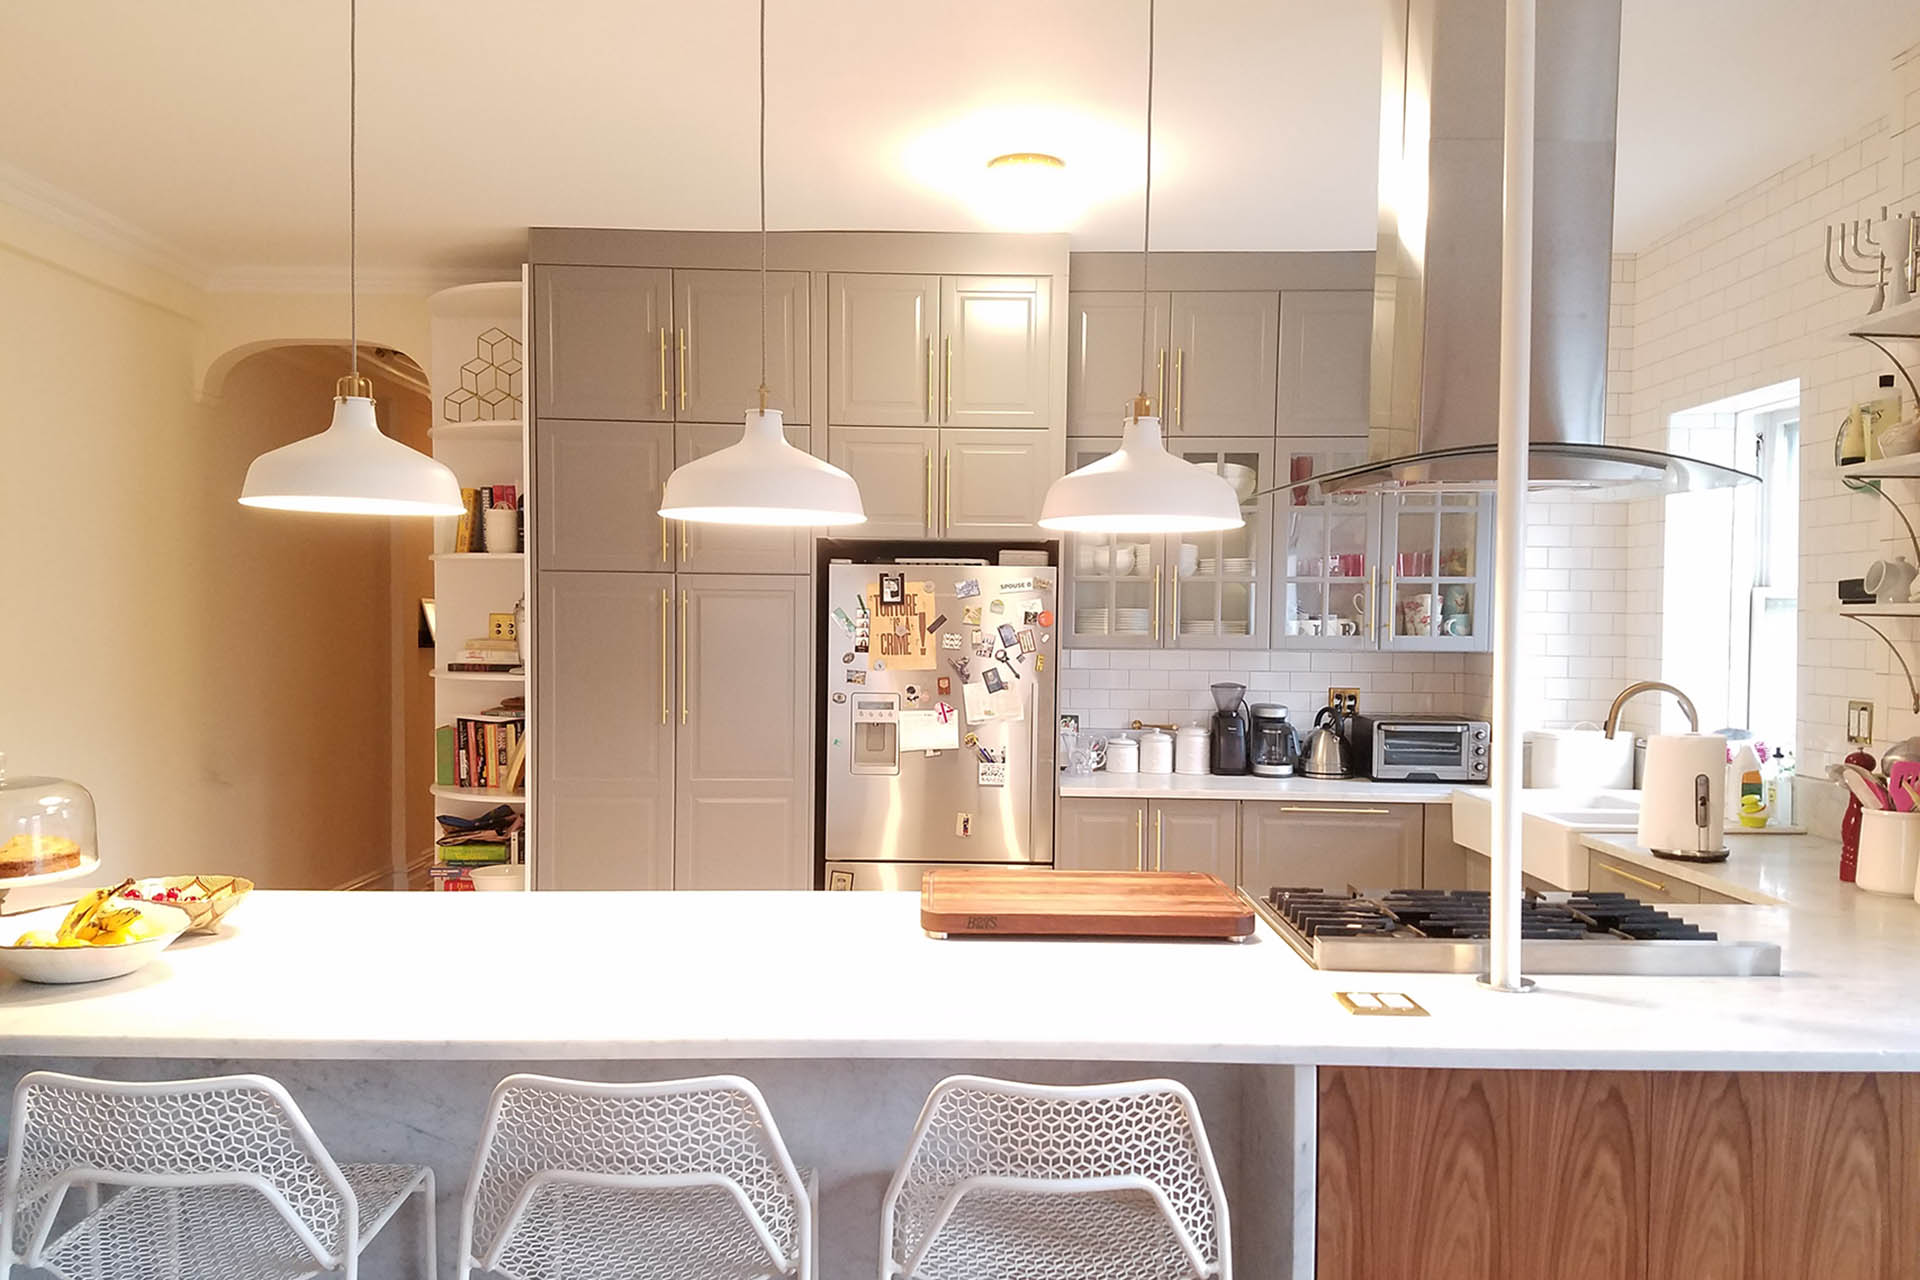 5 IKEA Kitchens Designed To Keep Your Guests Closeu2026But Not Too Close